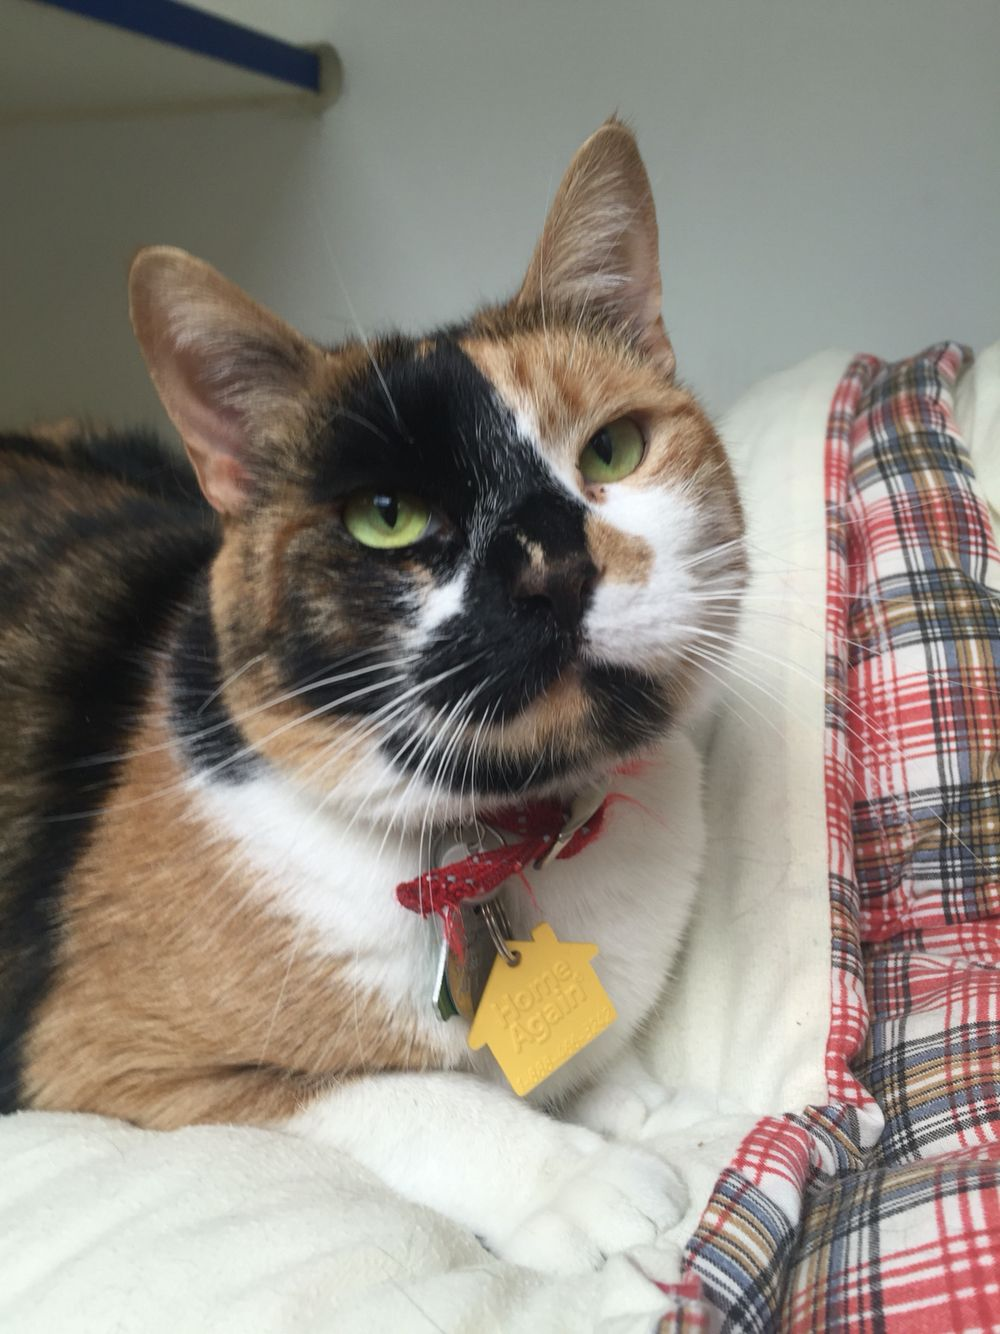 Olga has been waiting such a long time for hr forever home